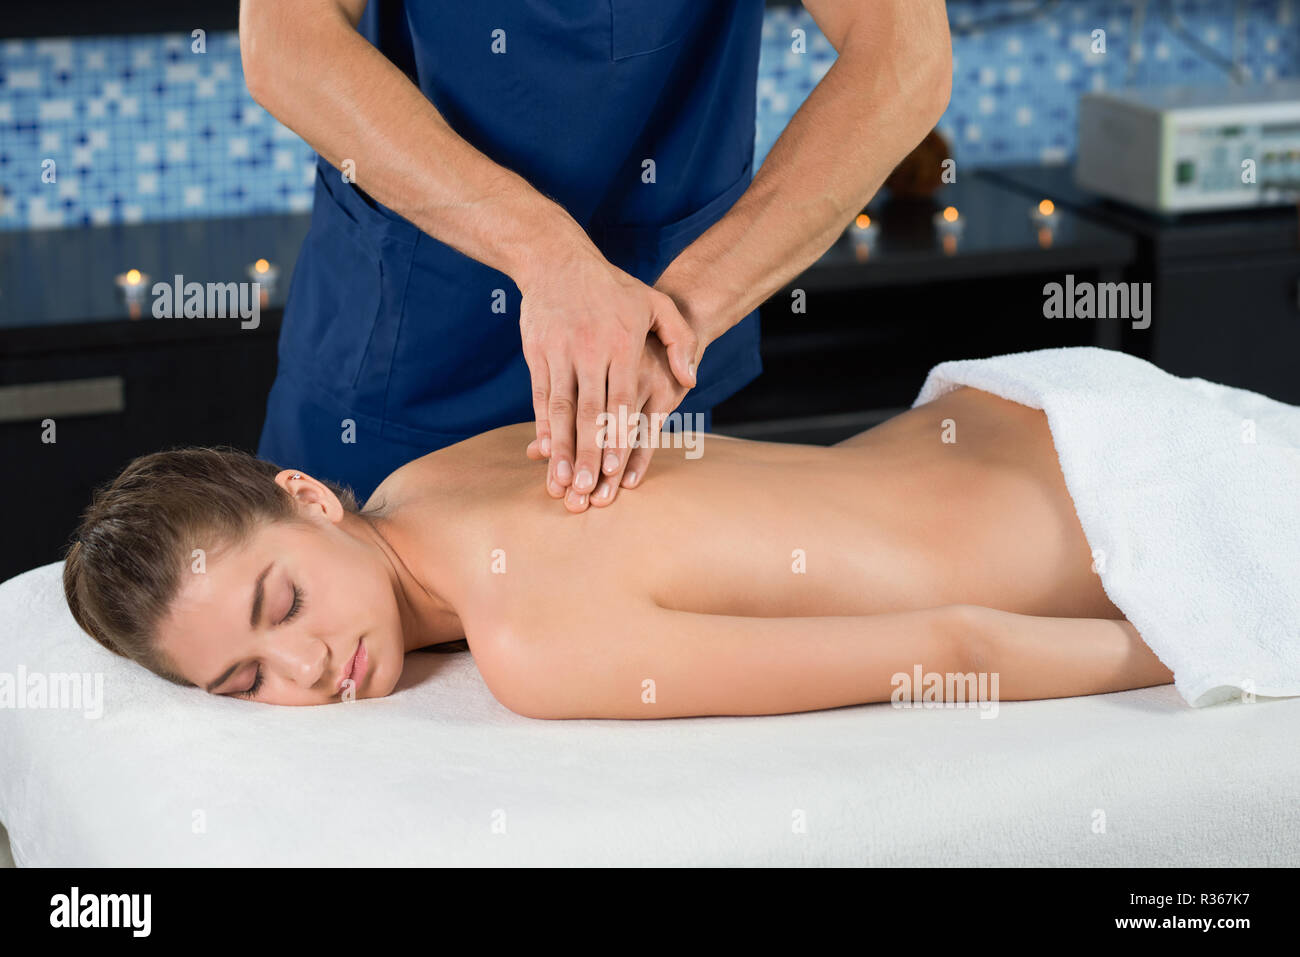 Side view of relaxed woman with closed eyes lyin on couch in spa salon and getting antistressing back massage. Hands of male masseur doing healthy procedure. Concept of calmness and therapy. - Stock Image